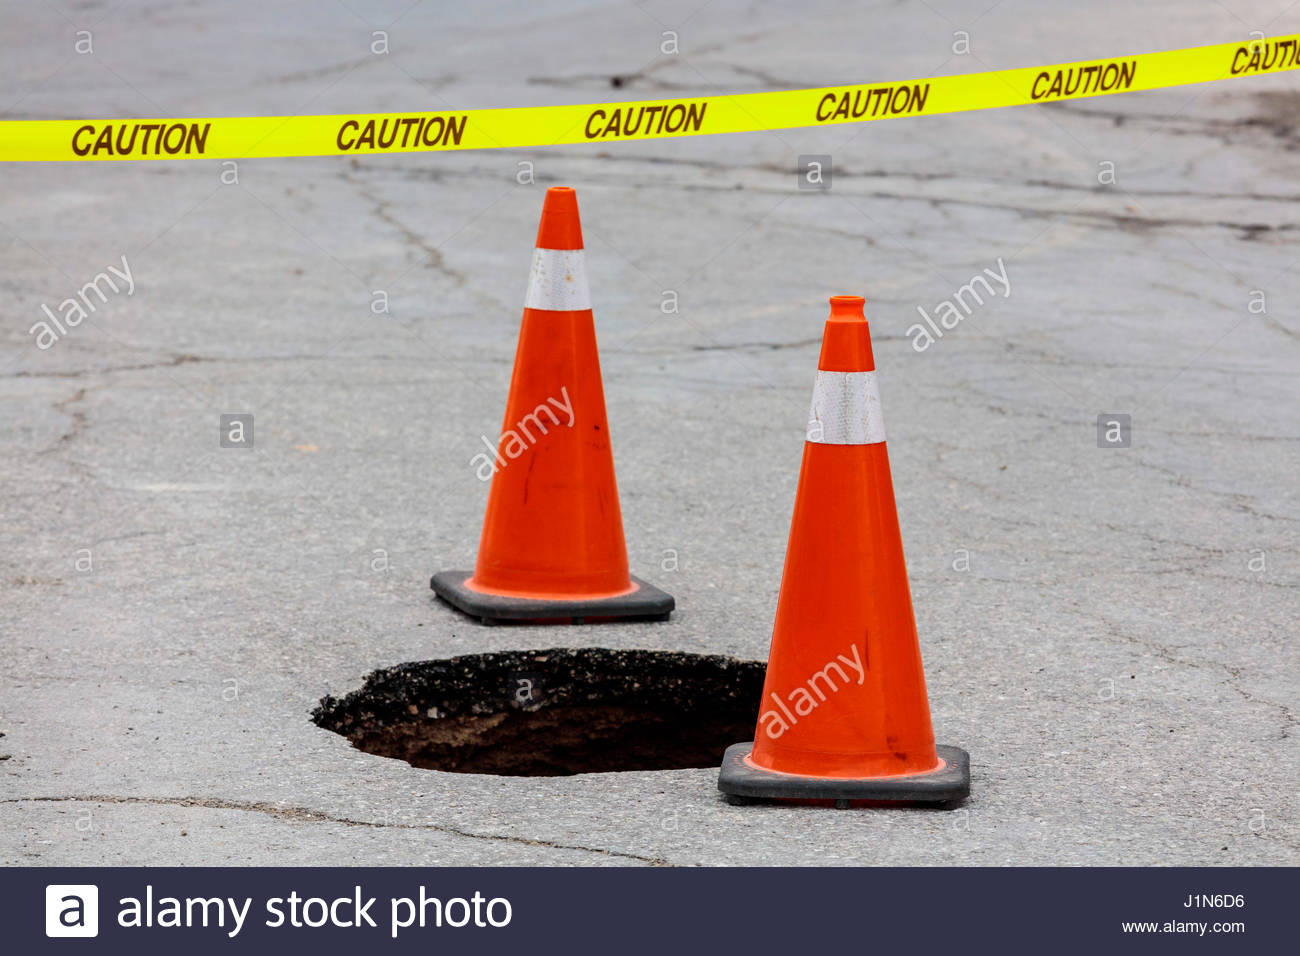 Sinkhole in road caused by water main break marked by traffic cone and caution tape in Toronto Ontario Canada. - Stock Image